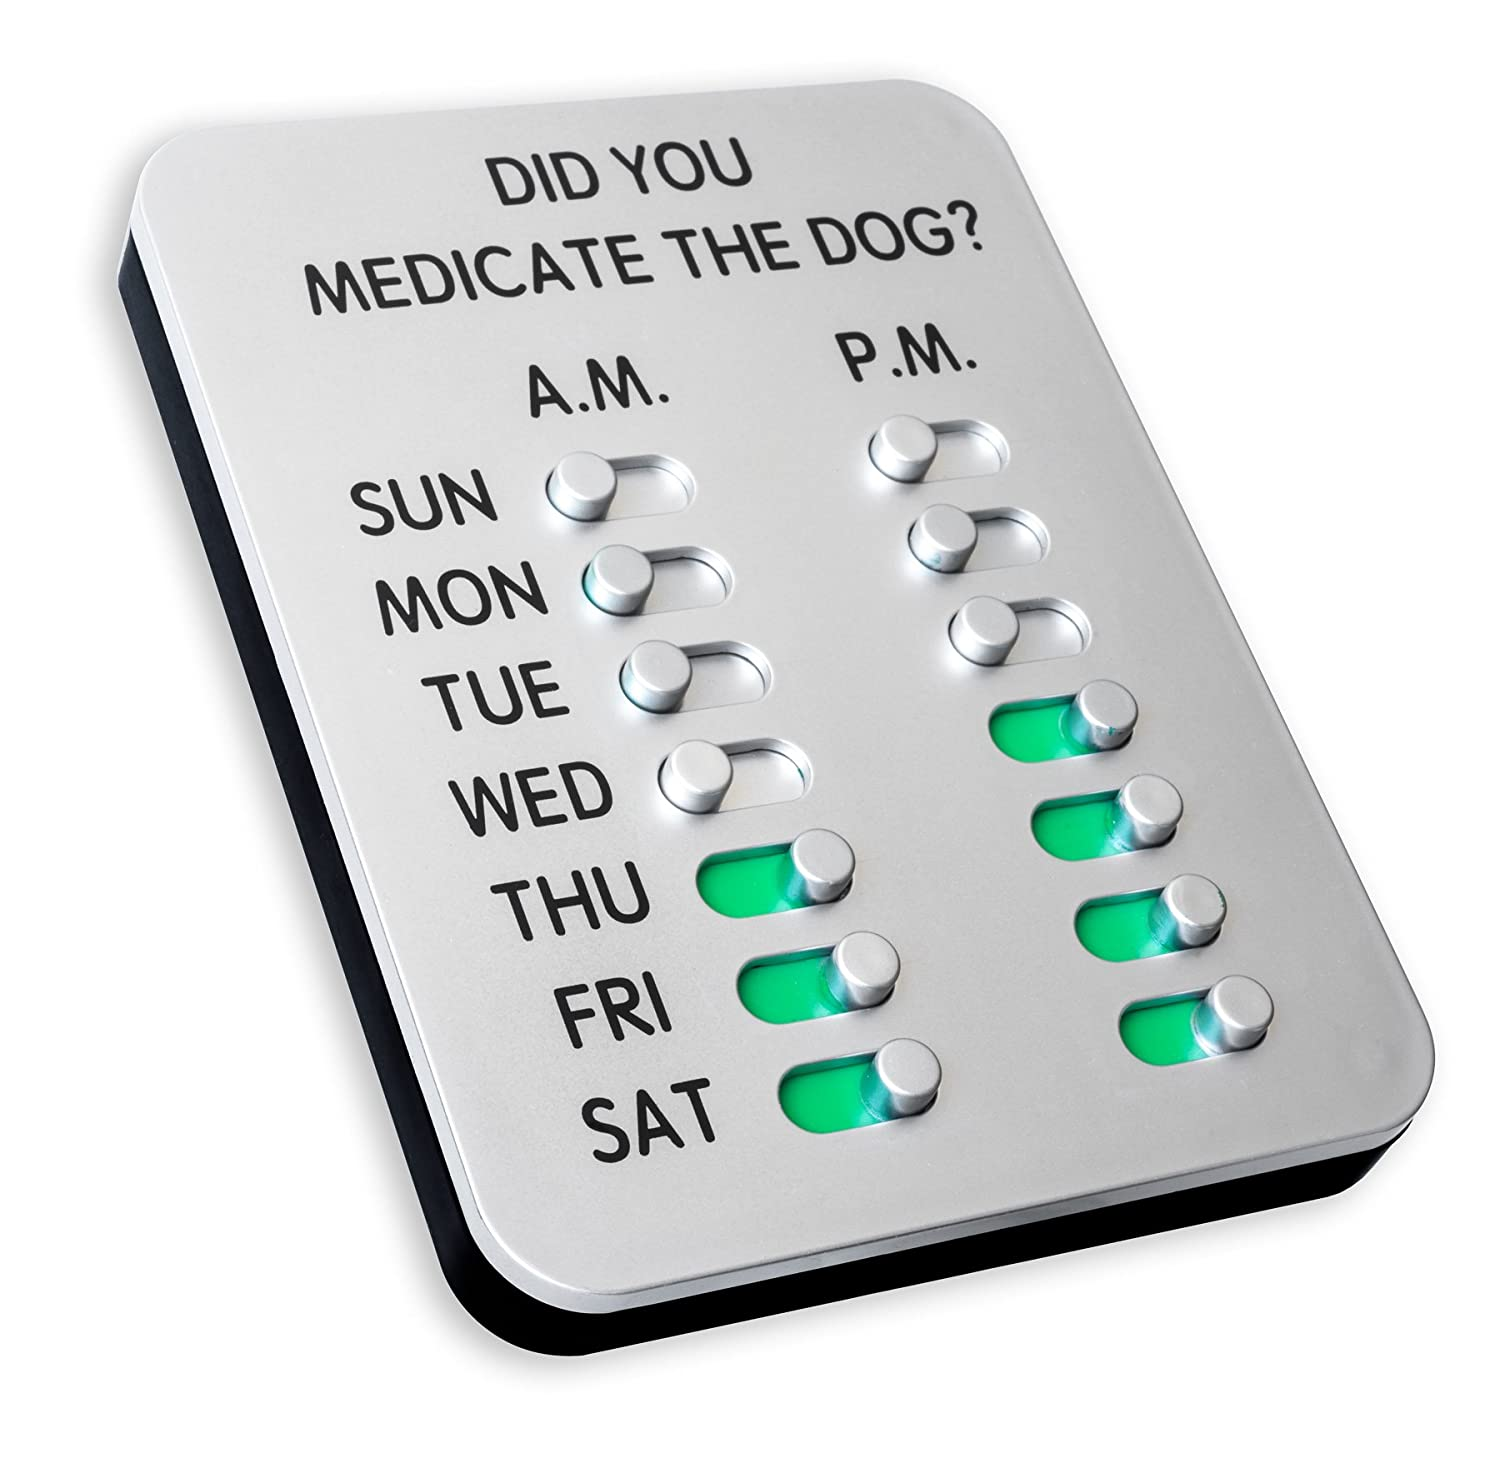 Did You Medicate the Dog?